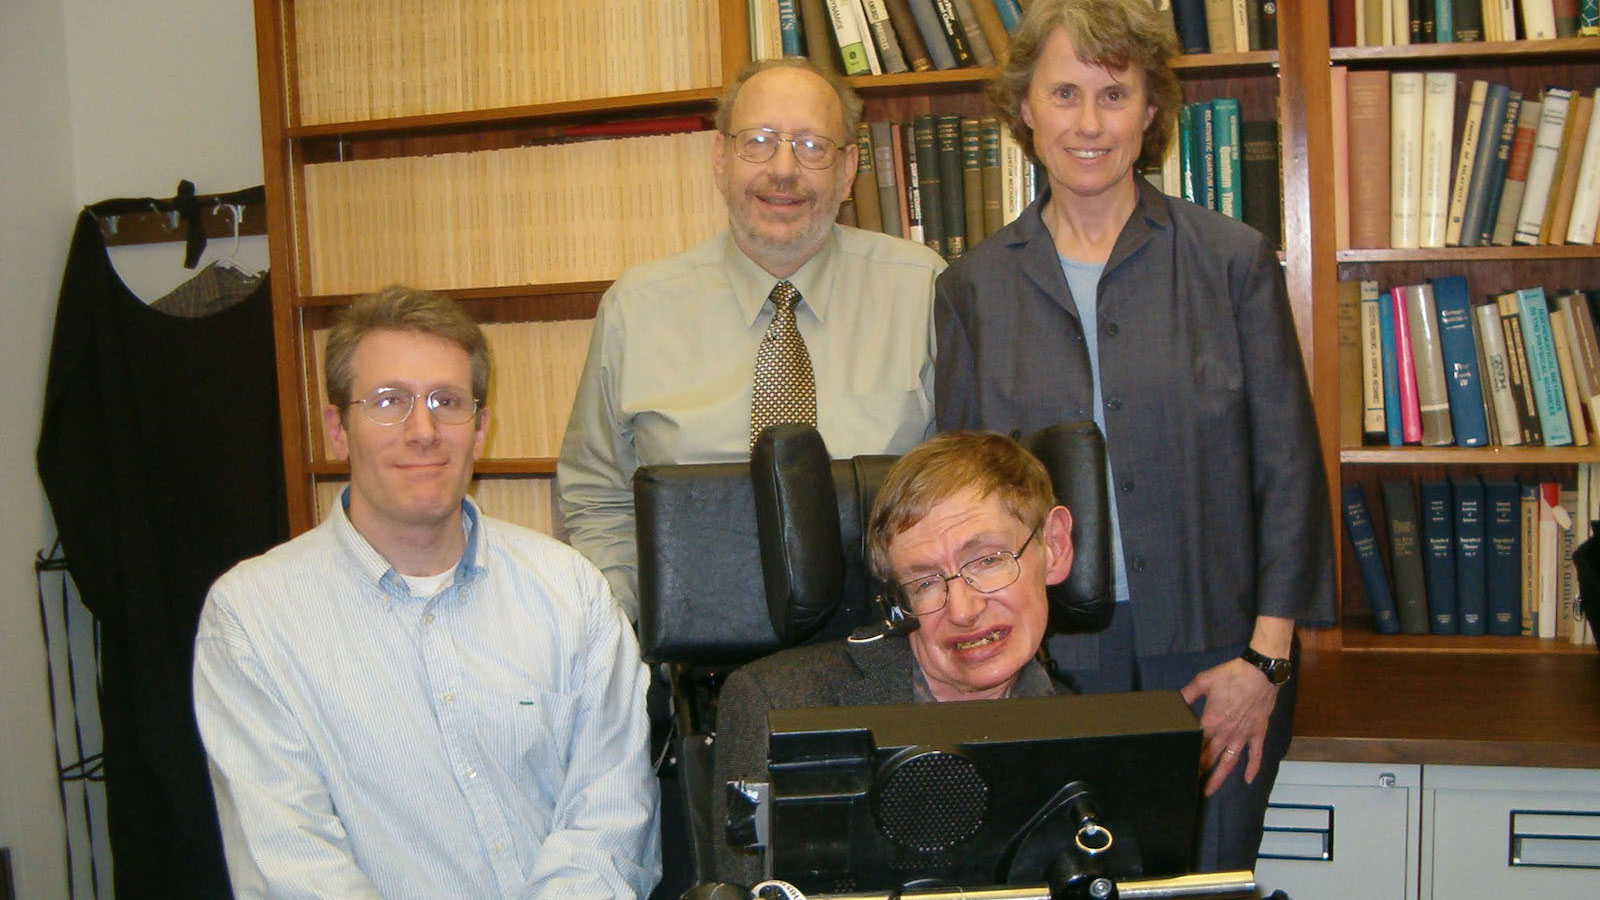 Famous physicist Stephen Hawking (foreground), disabled by neuromuscular disease, depended on scientists and engineers who developed the technologies that enabled him to overcome the loss of speech. Speech synthesis and acoustics experts who helped him included (from left behind Hawking) Arizona State University alum Michael Deisher and his colleagues, the late Edward Brucket and Corine Bickley, pictured here in 2005. Photograph courtesy of Michael Deisher.